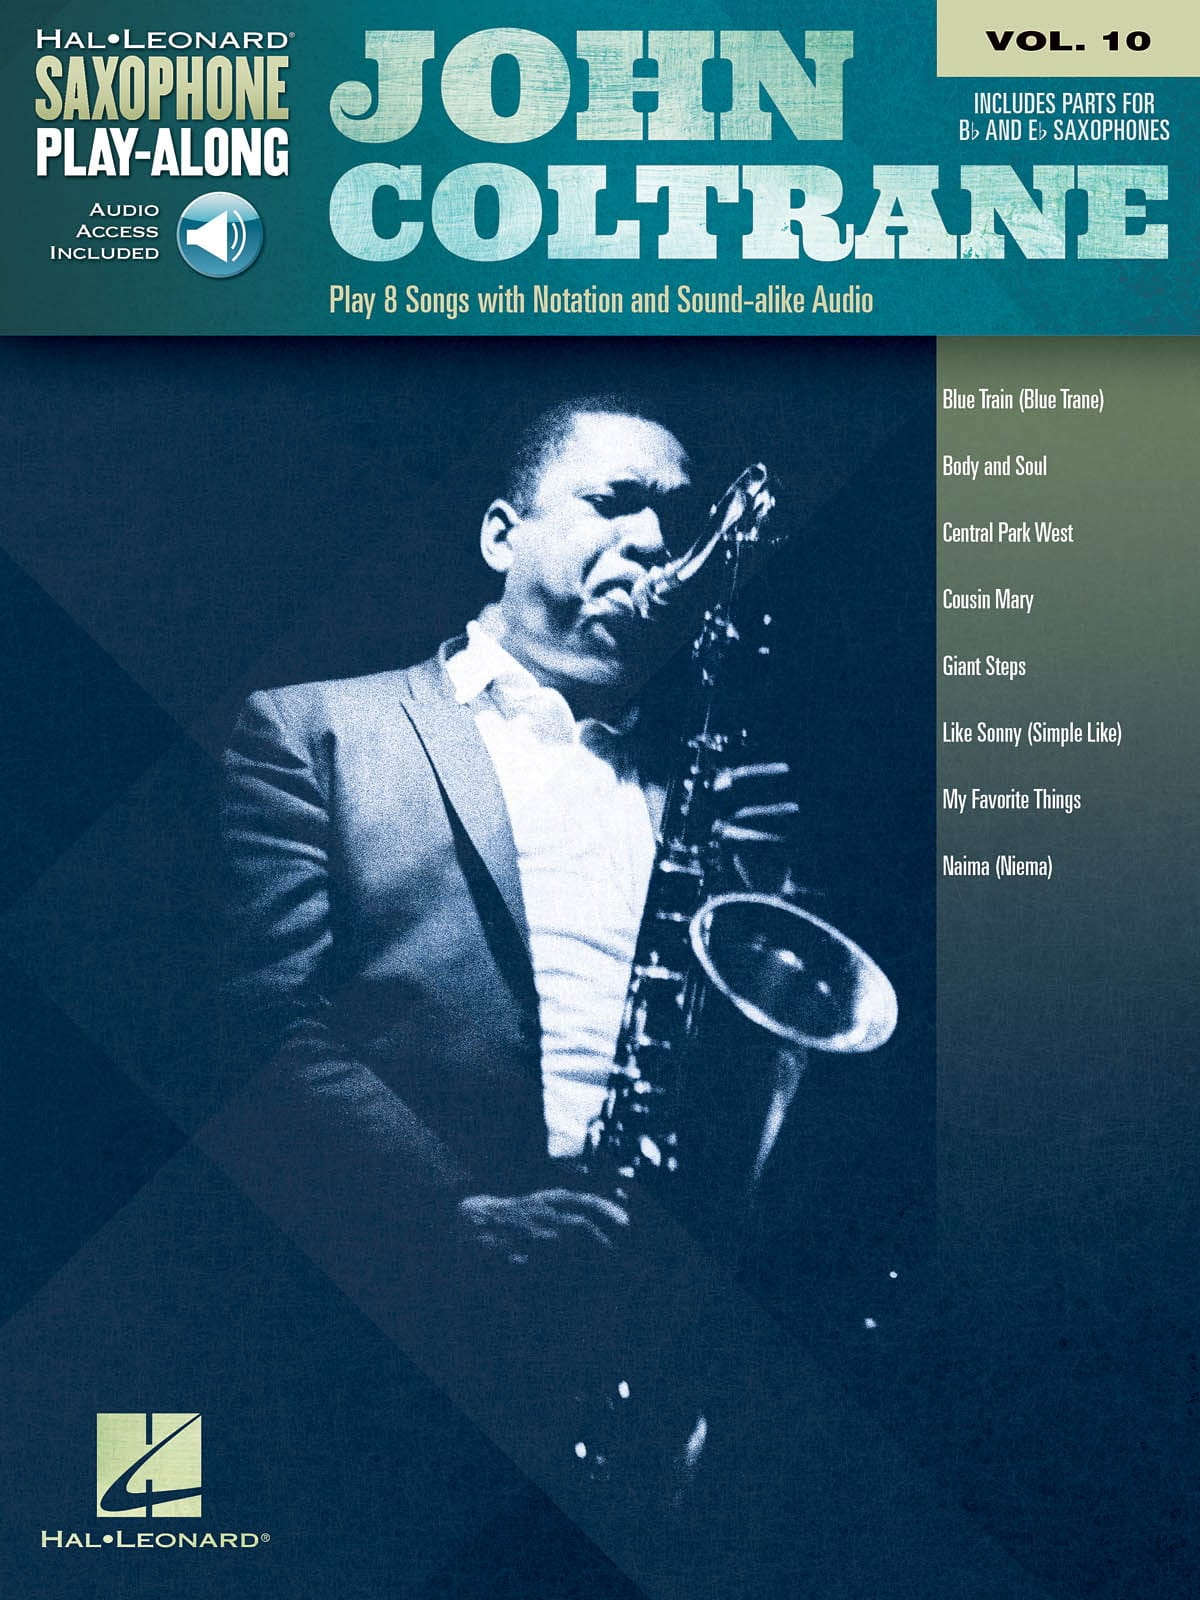 John Coltrane - Saxophone Play-Along Volume 10 John Coltrane - Partition - di-arezzo.fr